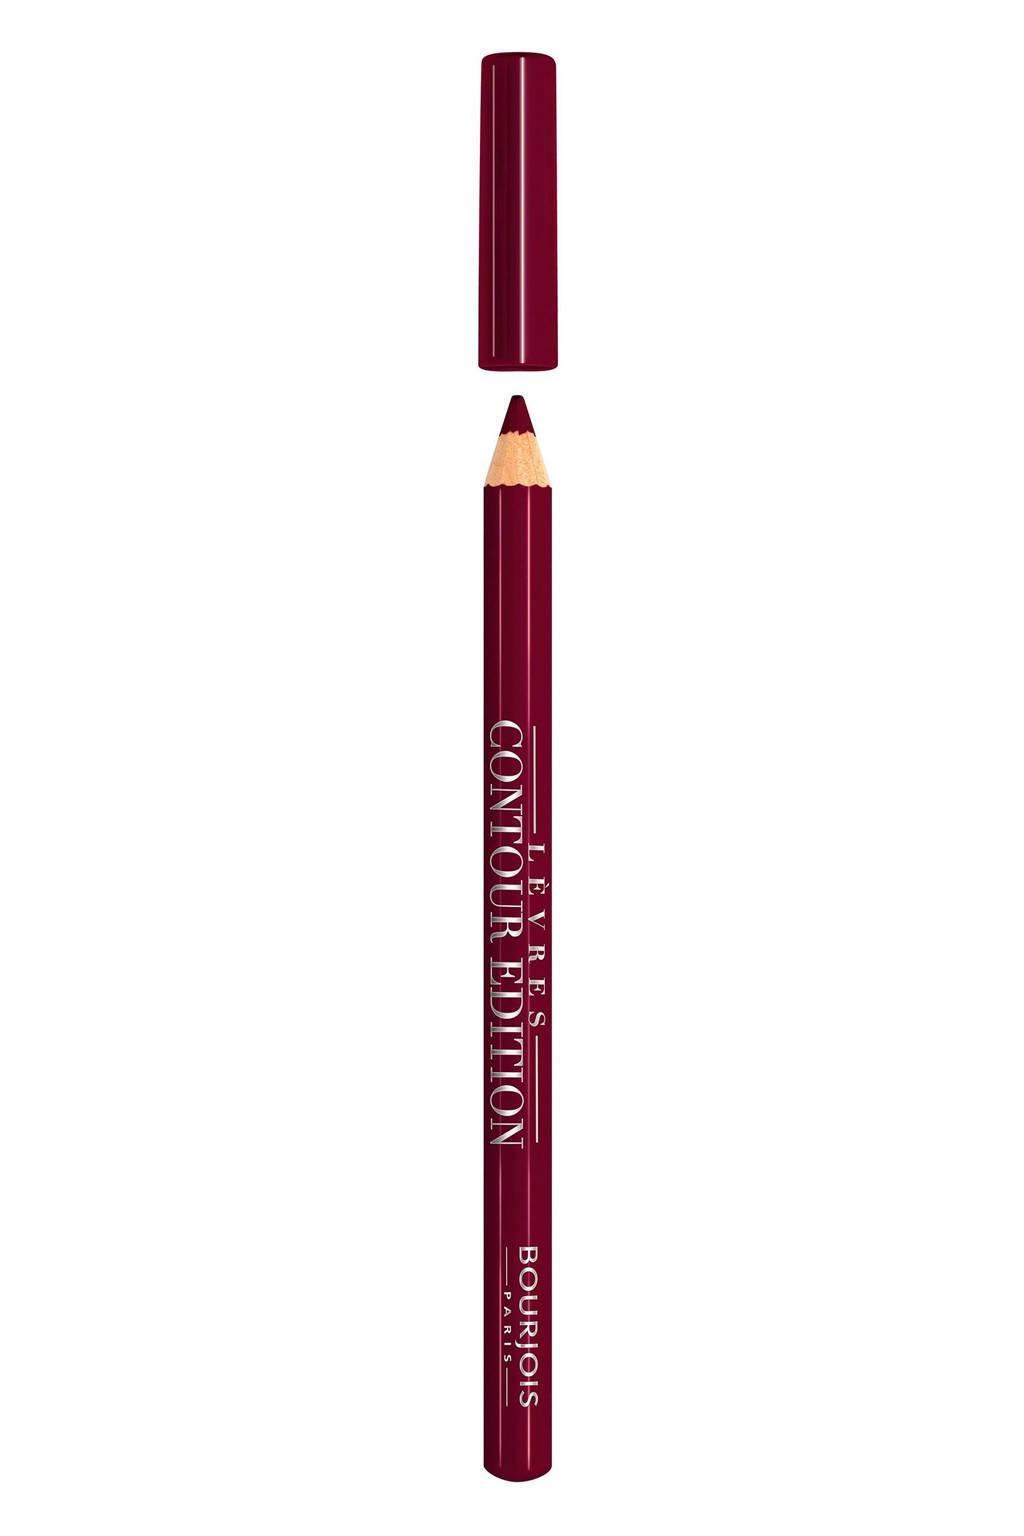 Bourjois Levres Contour lippotlood - 09 Plump It Up